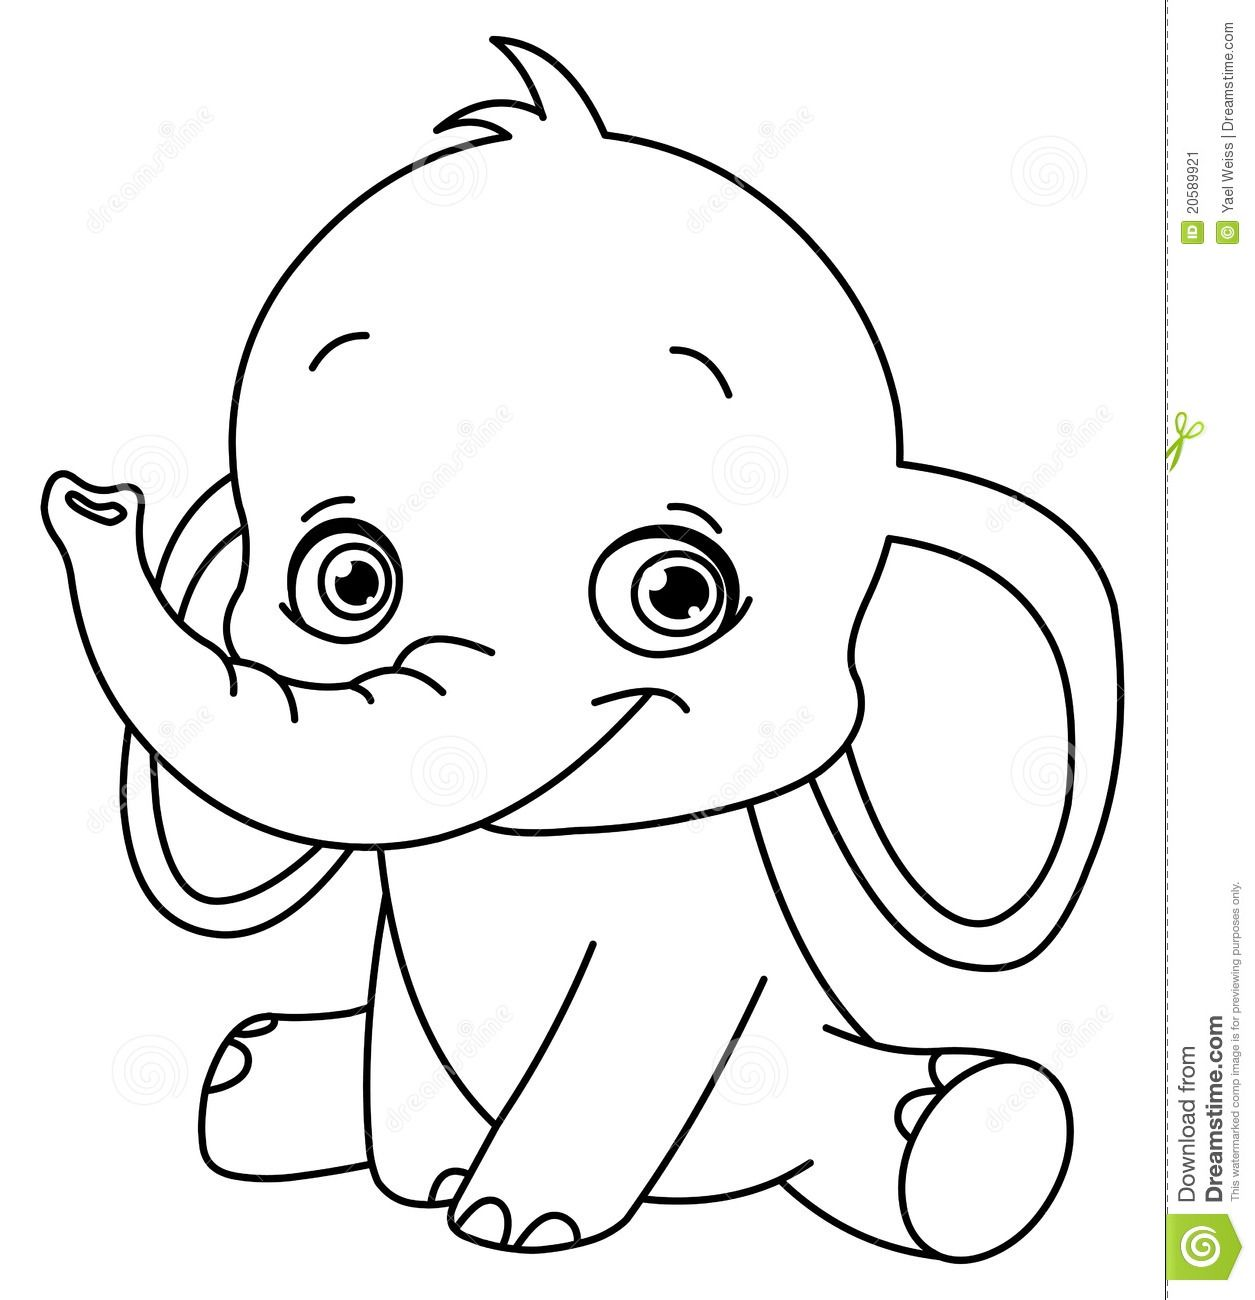 Baby elephant coloring pages to download and print for free ...